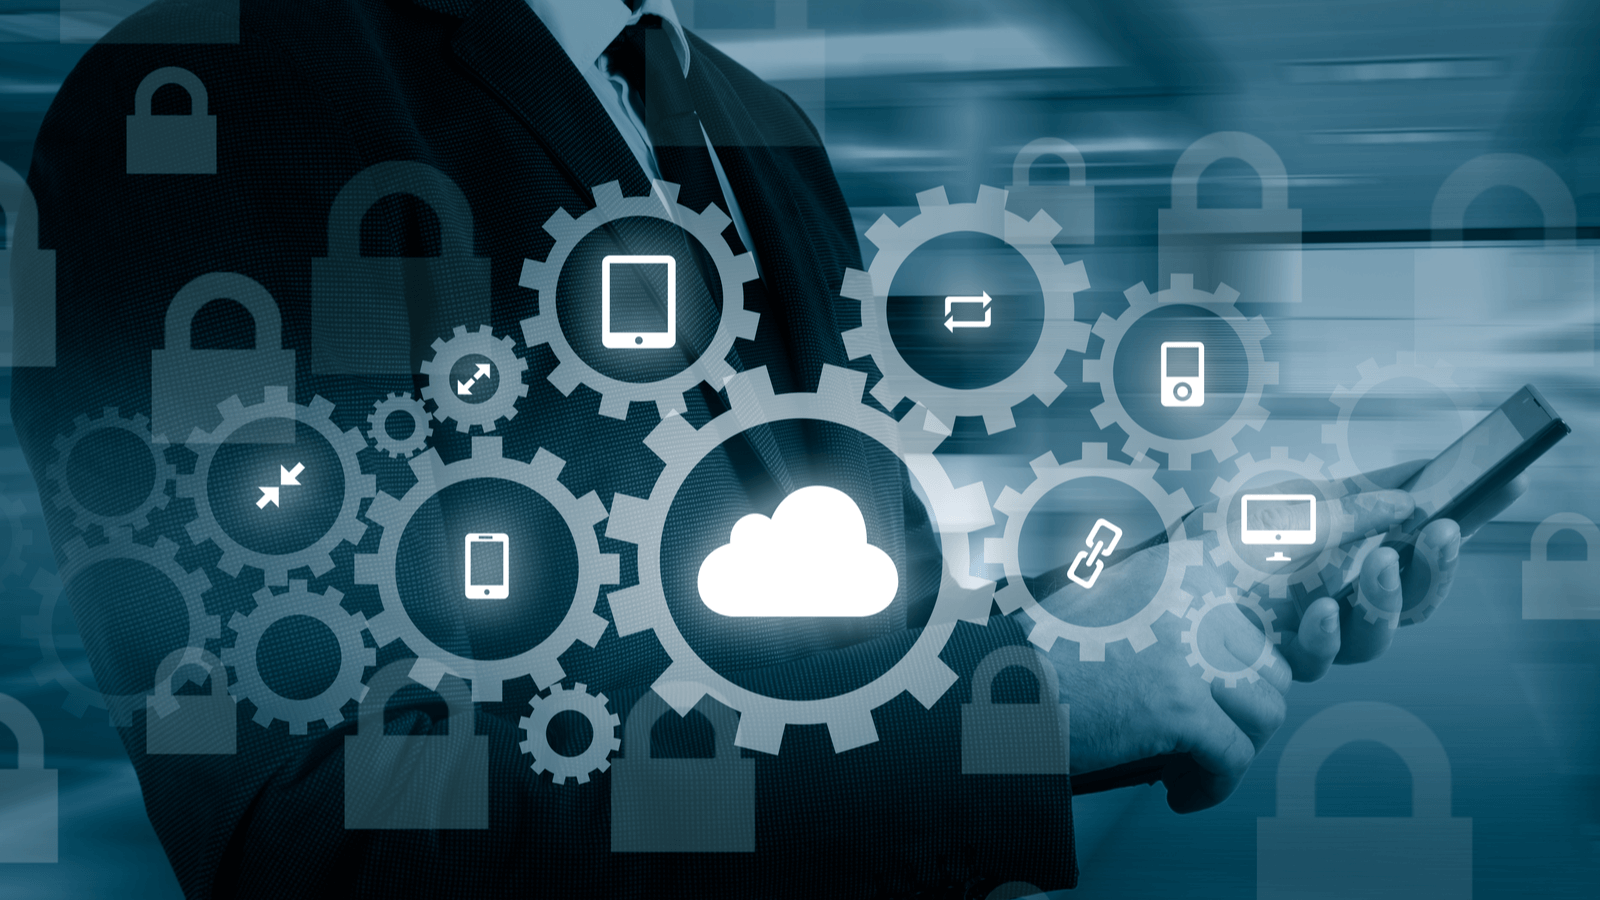 Successful integration of Cloud solutions into business operations